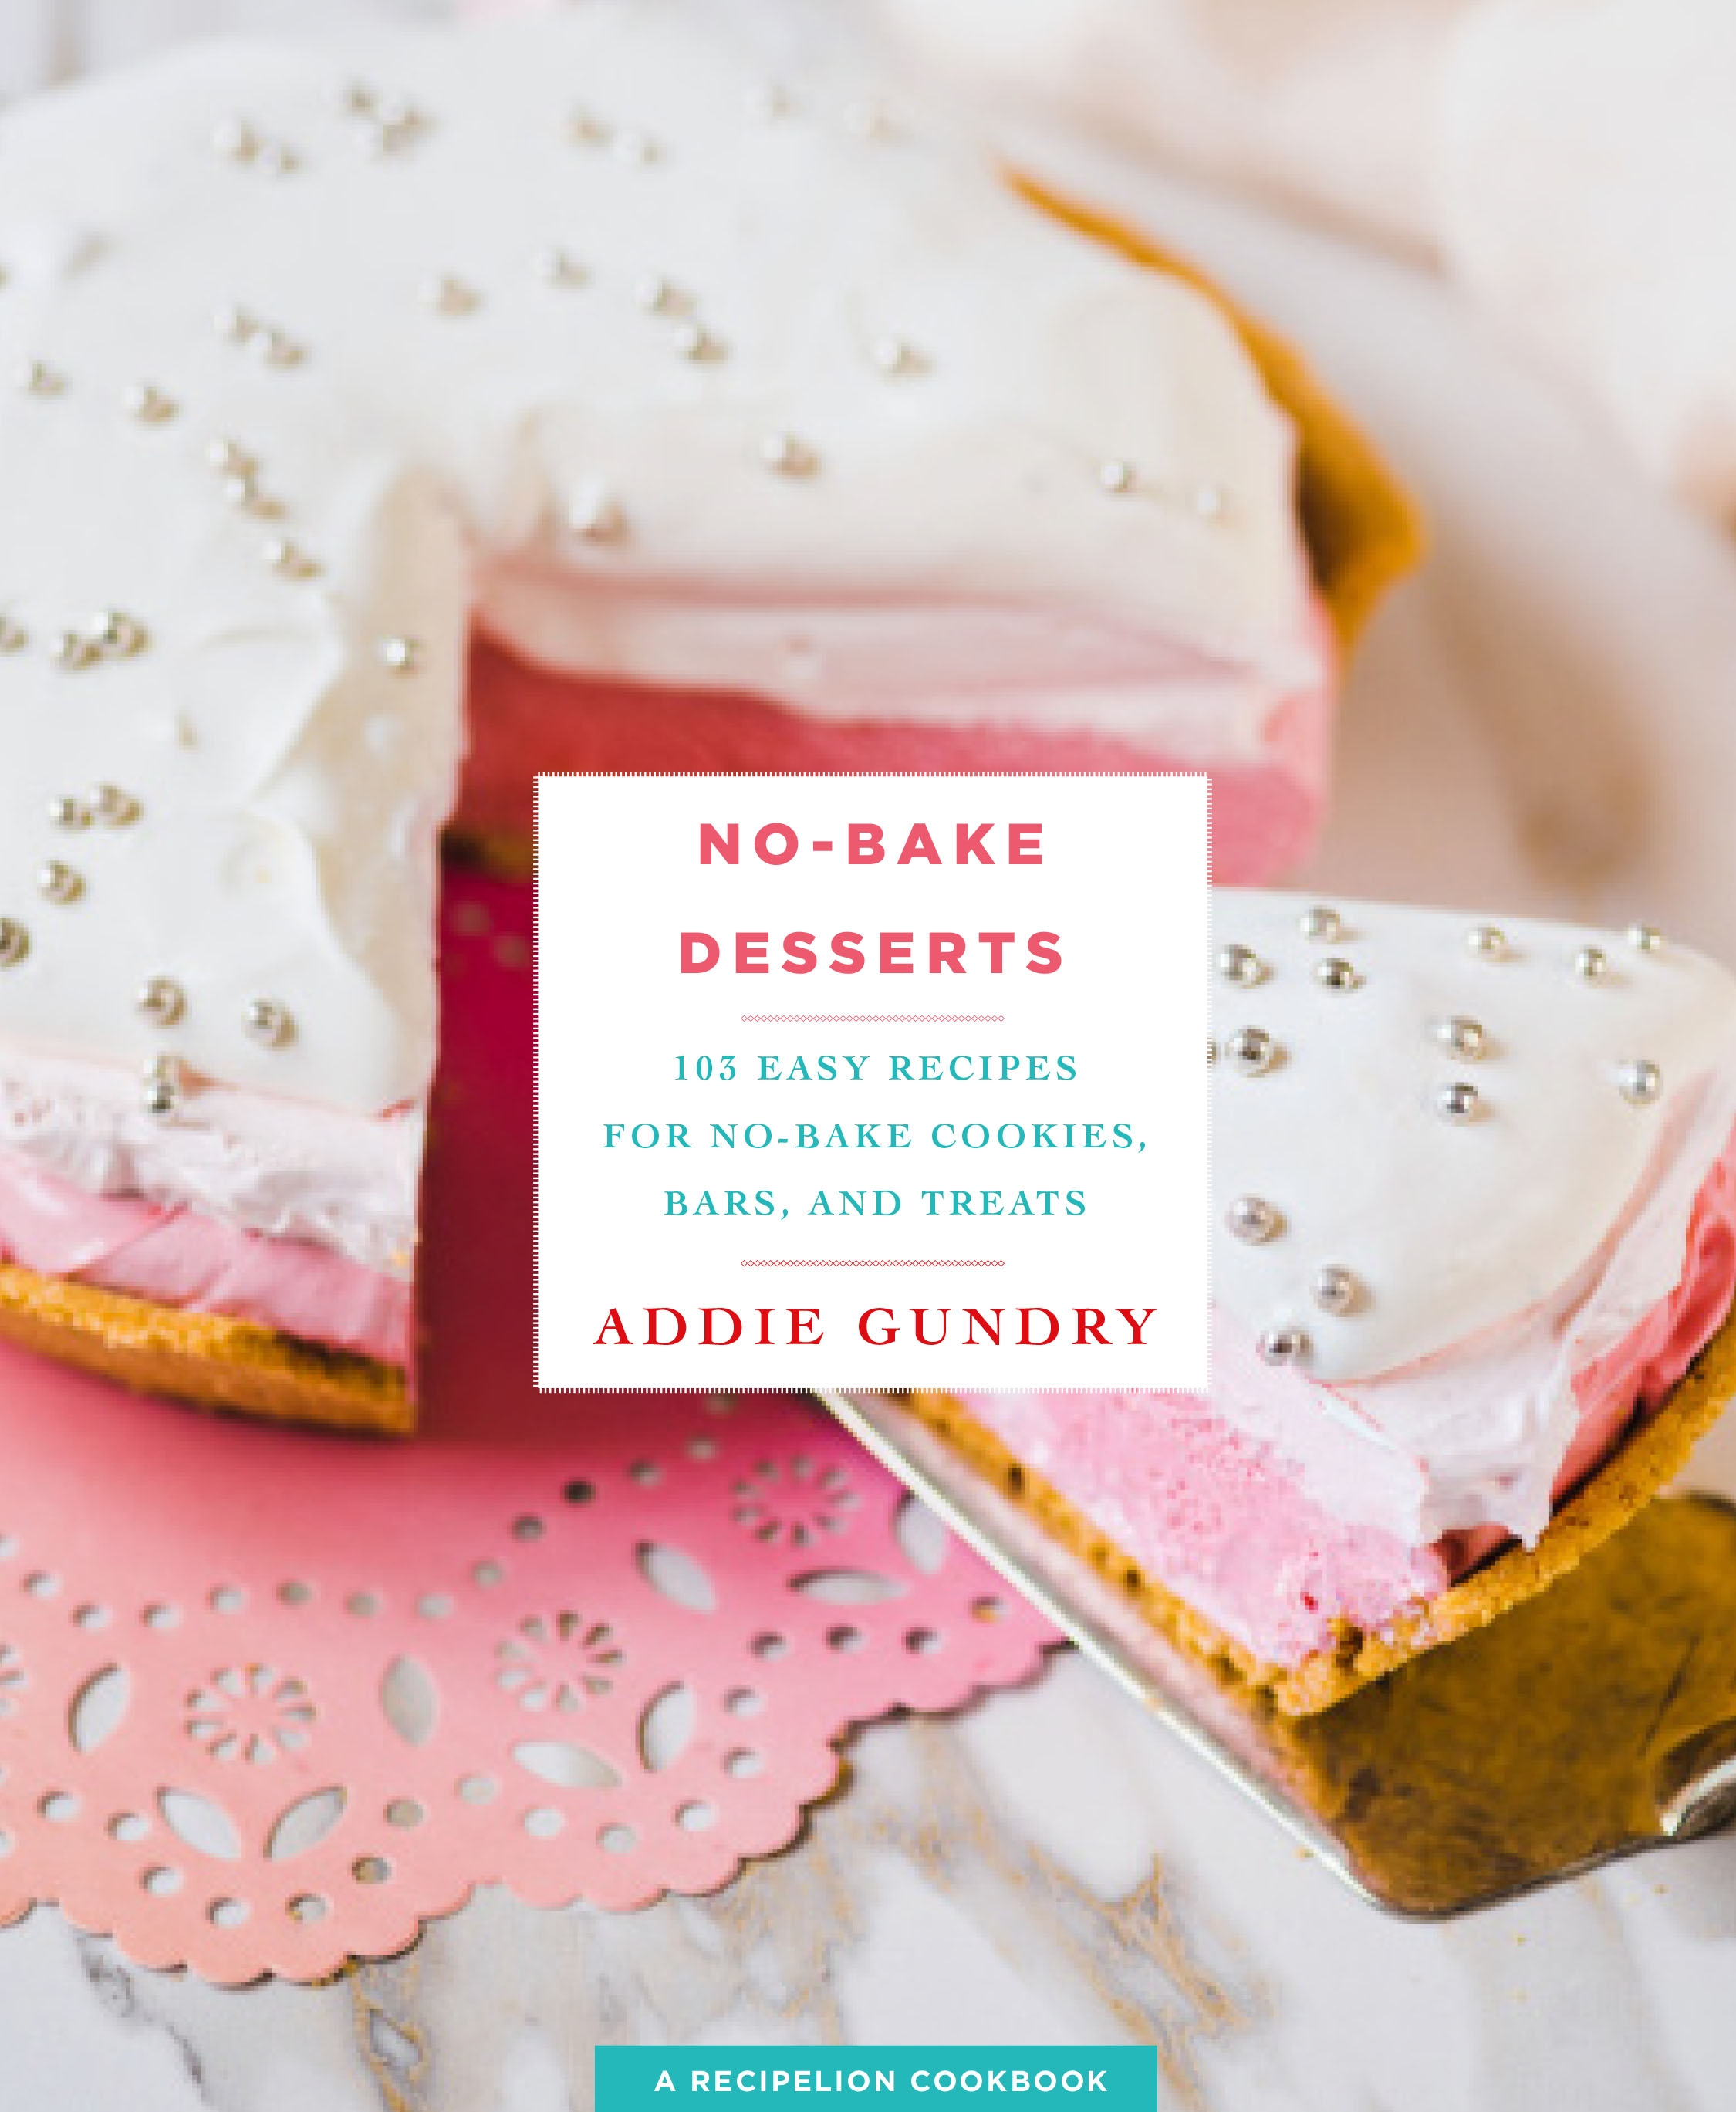 No Bake Desserts 103 Easy Recipes For No Bake Cookies Bars And Treats Walmart Com Walmart Com